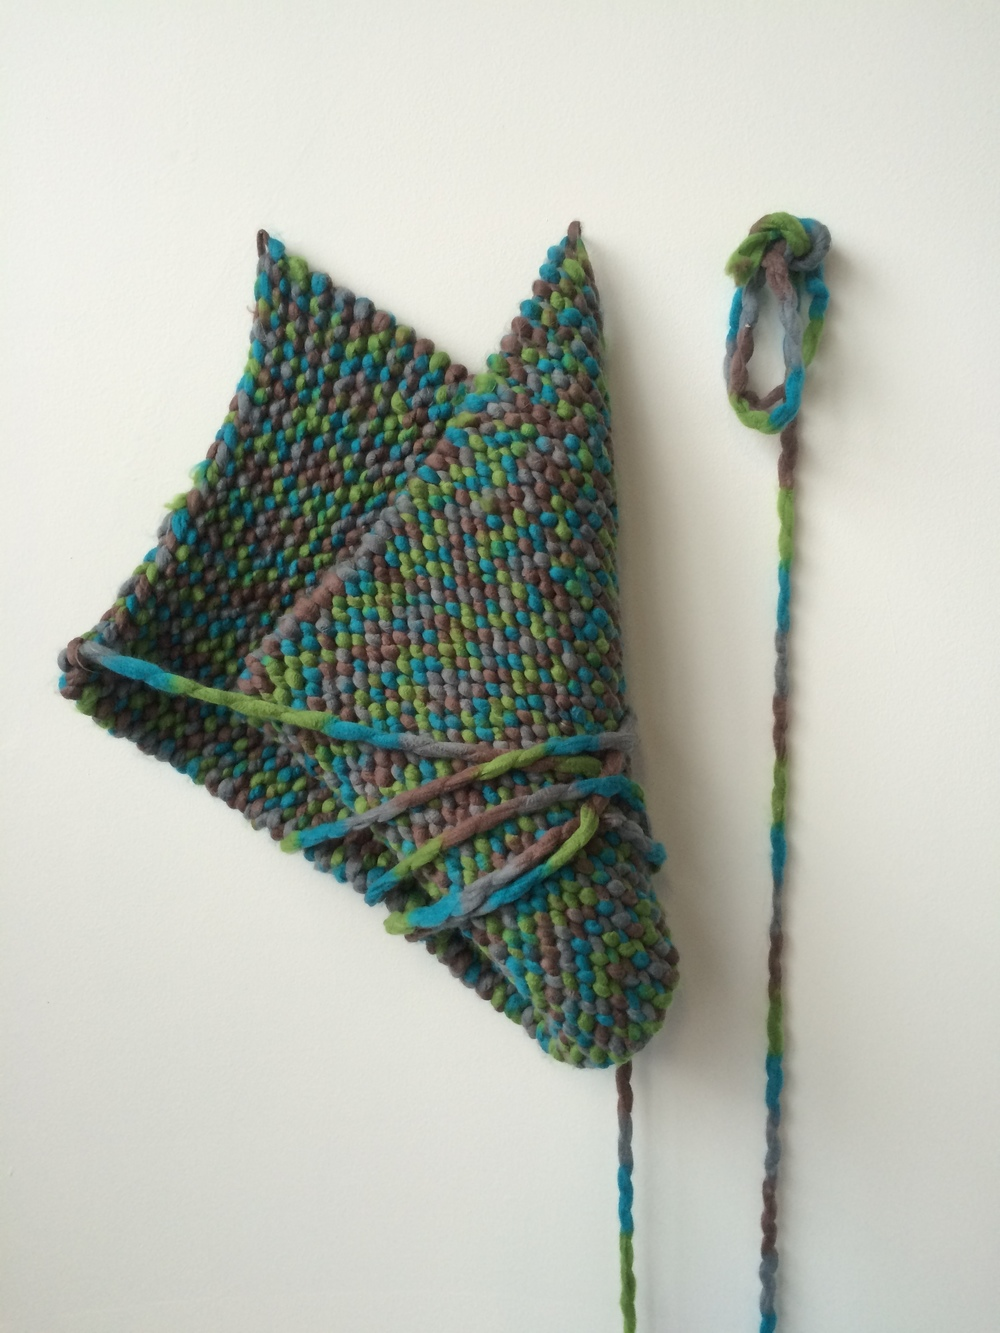 Maude Findlay | 2015 | knitted acrylic yarn | variable dimensions